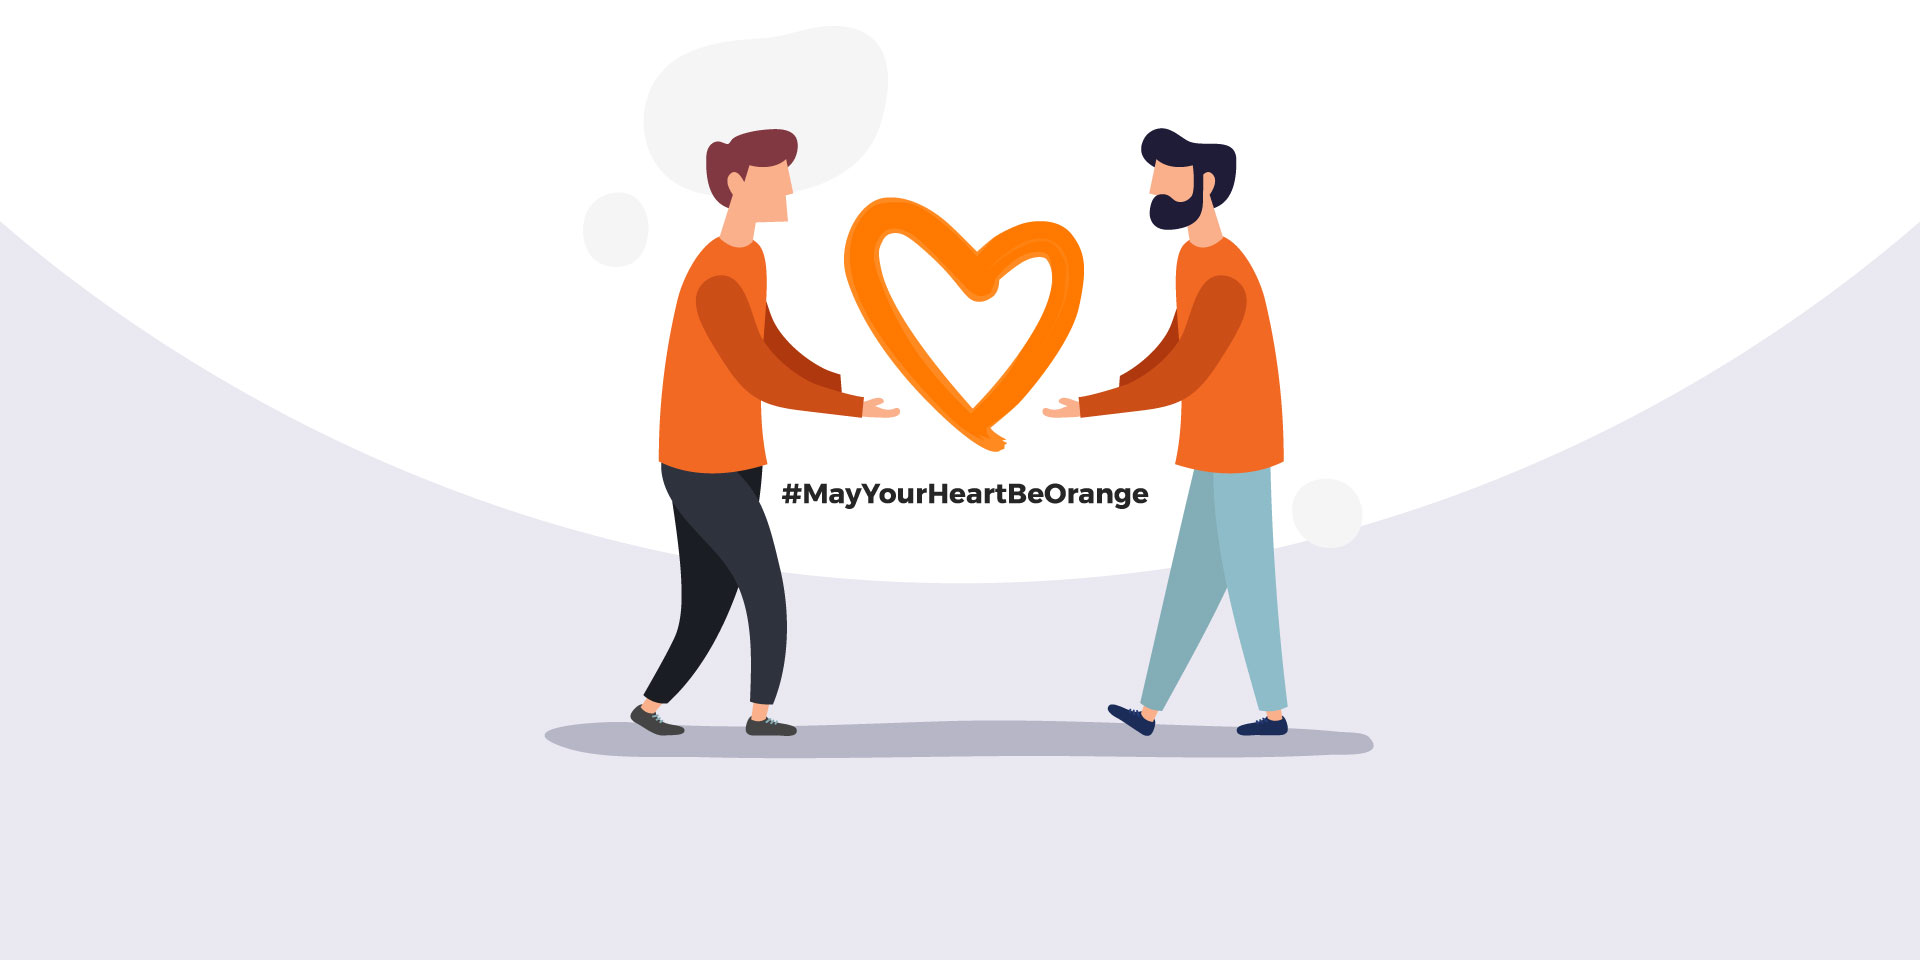 Two illustrated men holding an orange heart with the hashtag #MayYourHeartBeOrange between them